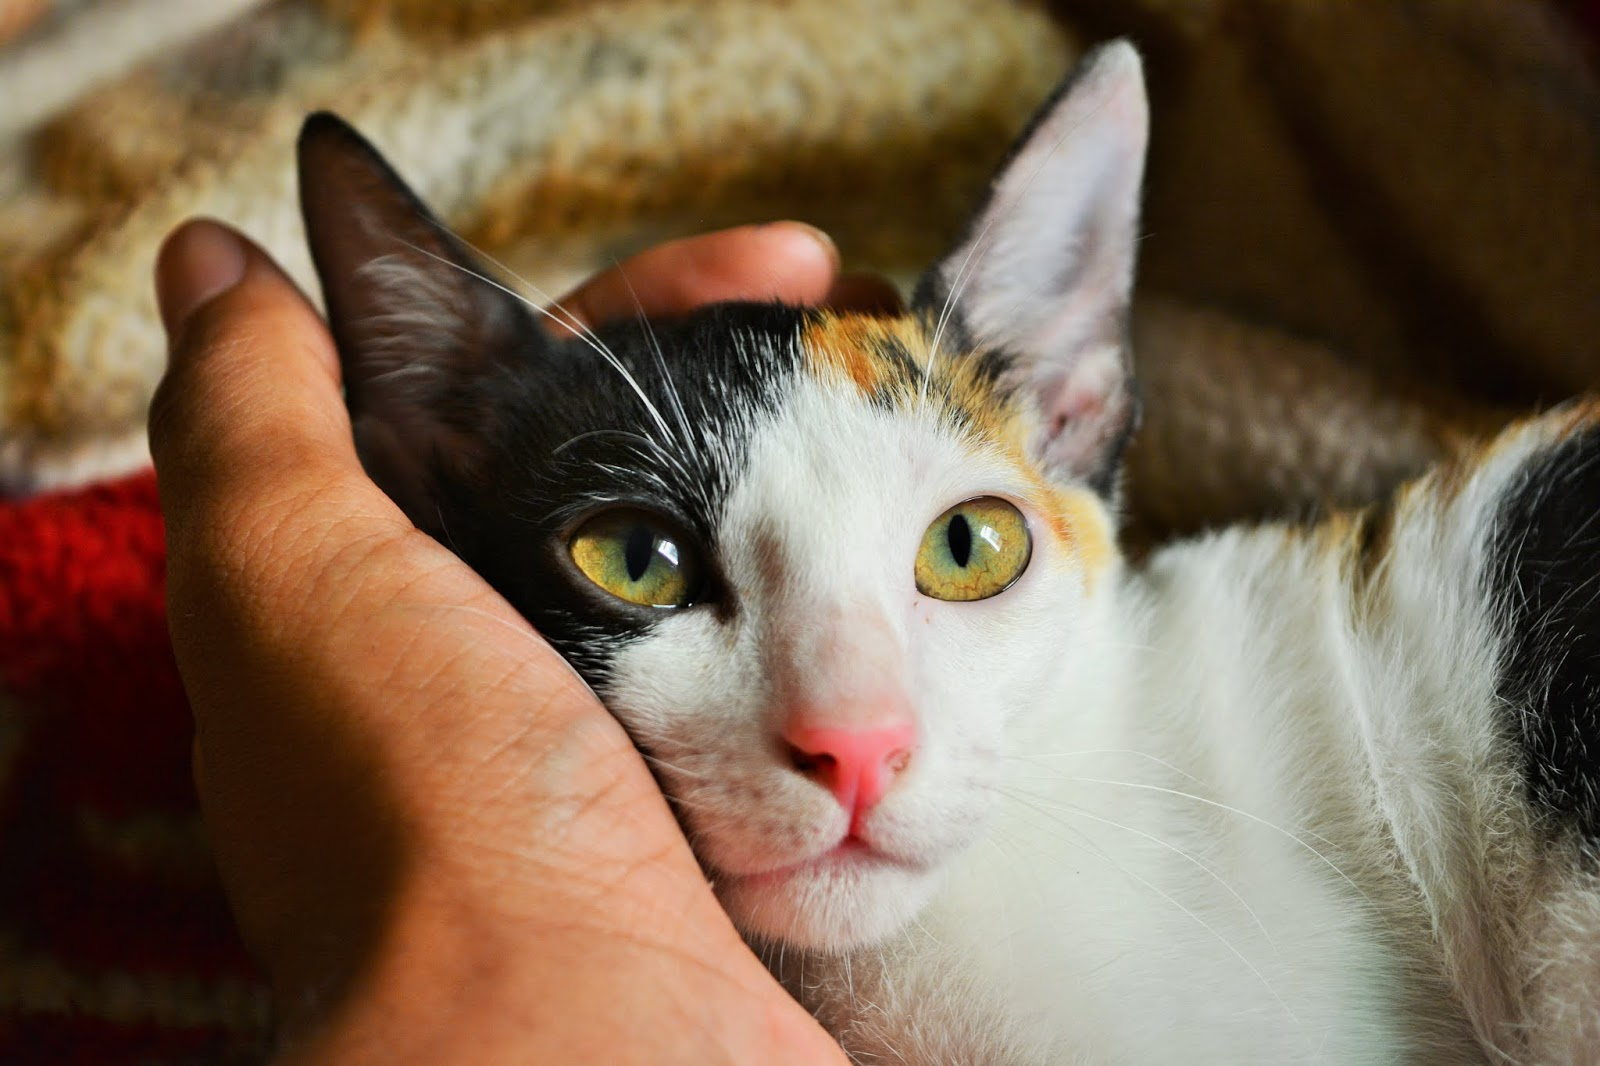 person-s-left-hand-holding-calico-cat,cat images